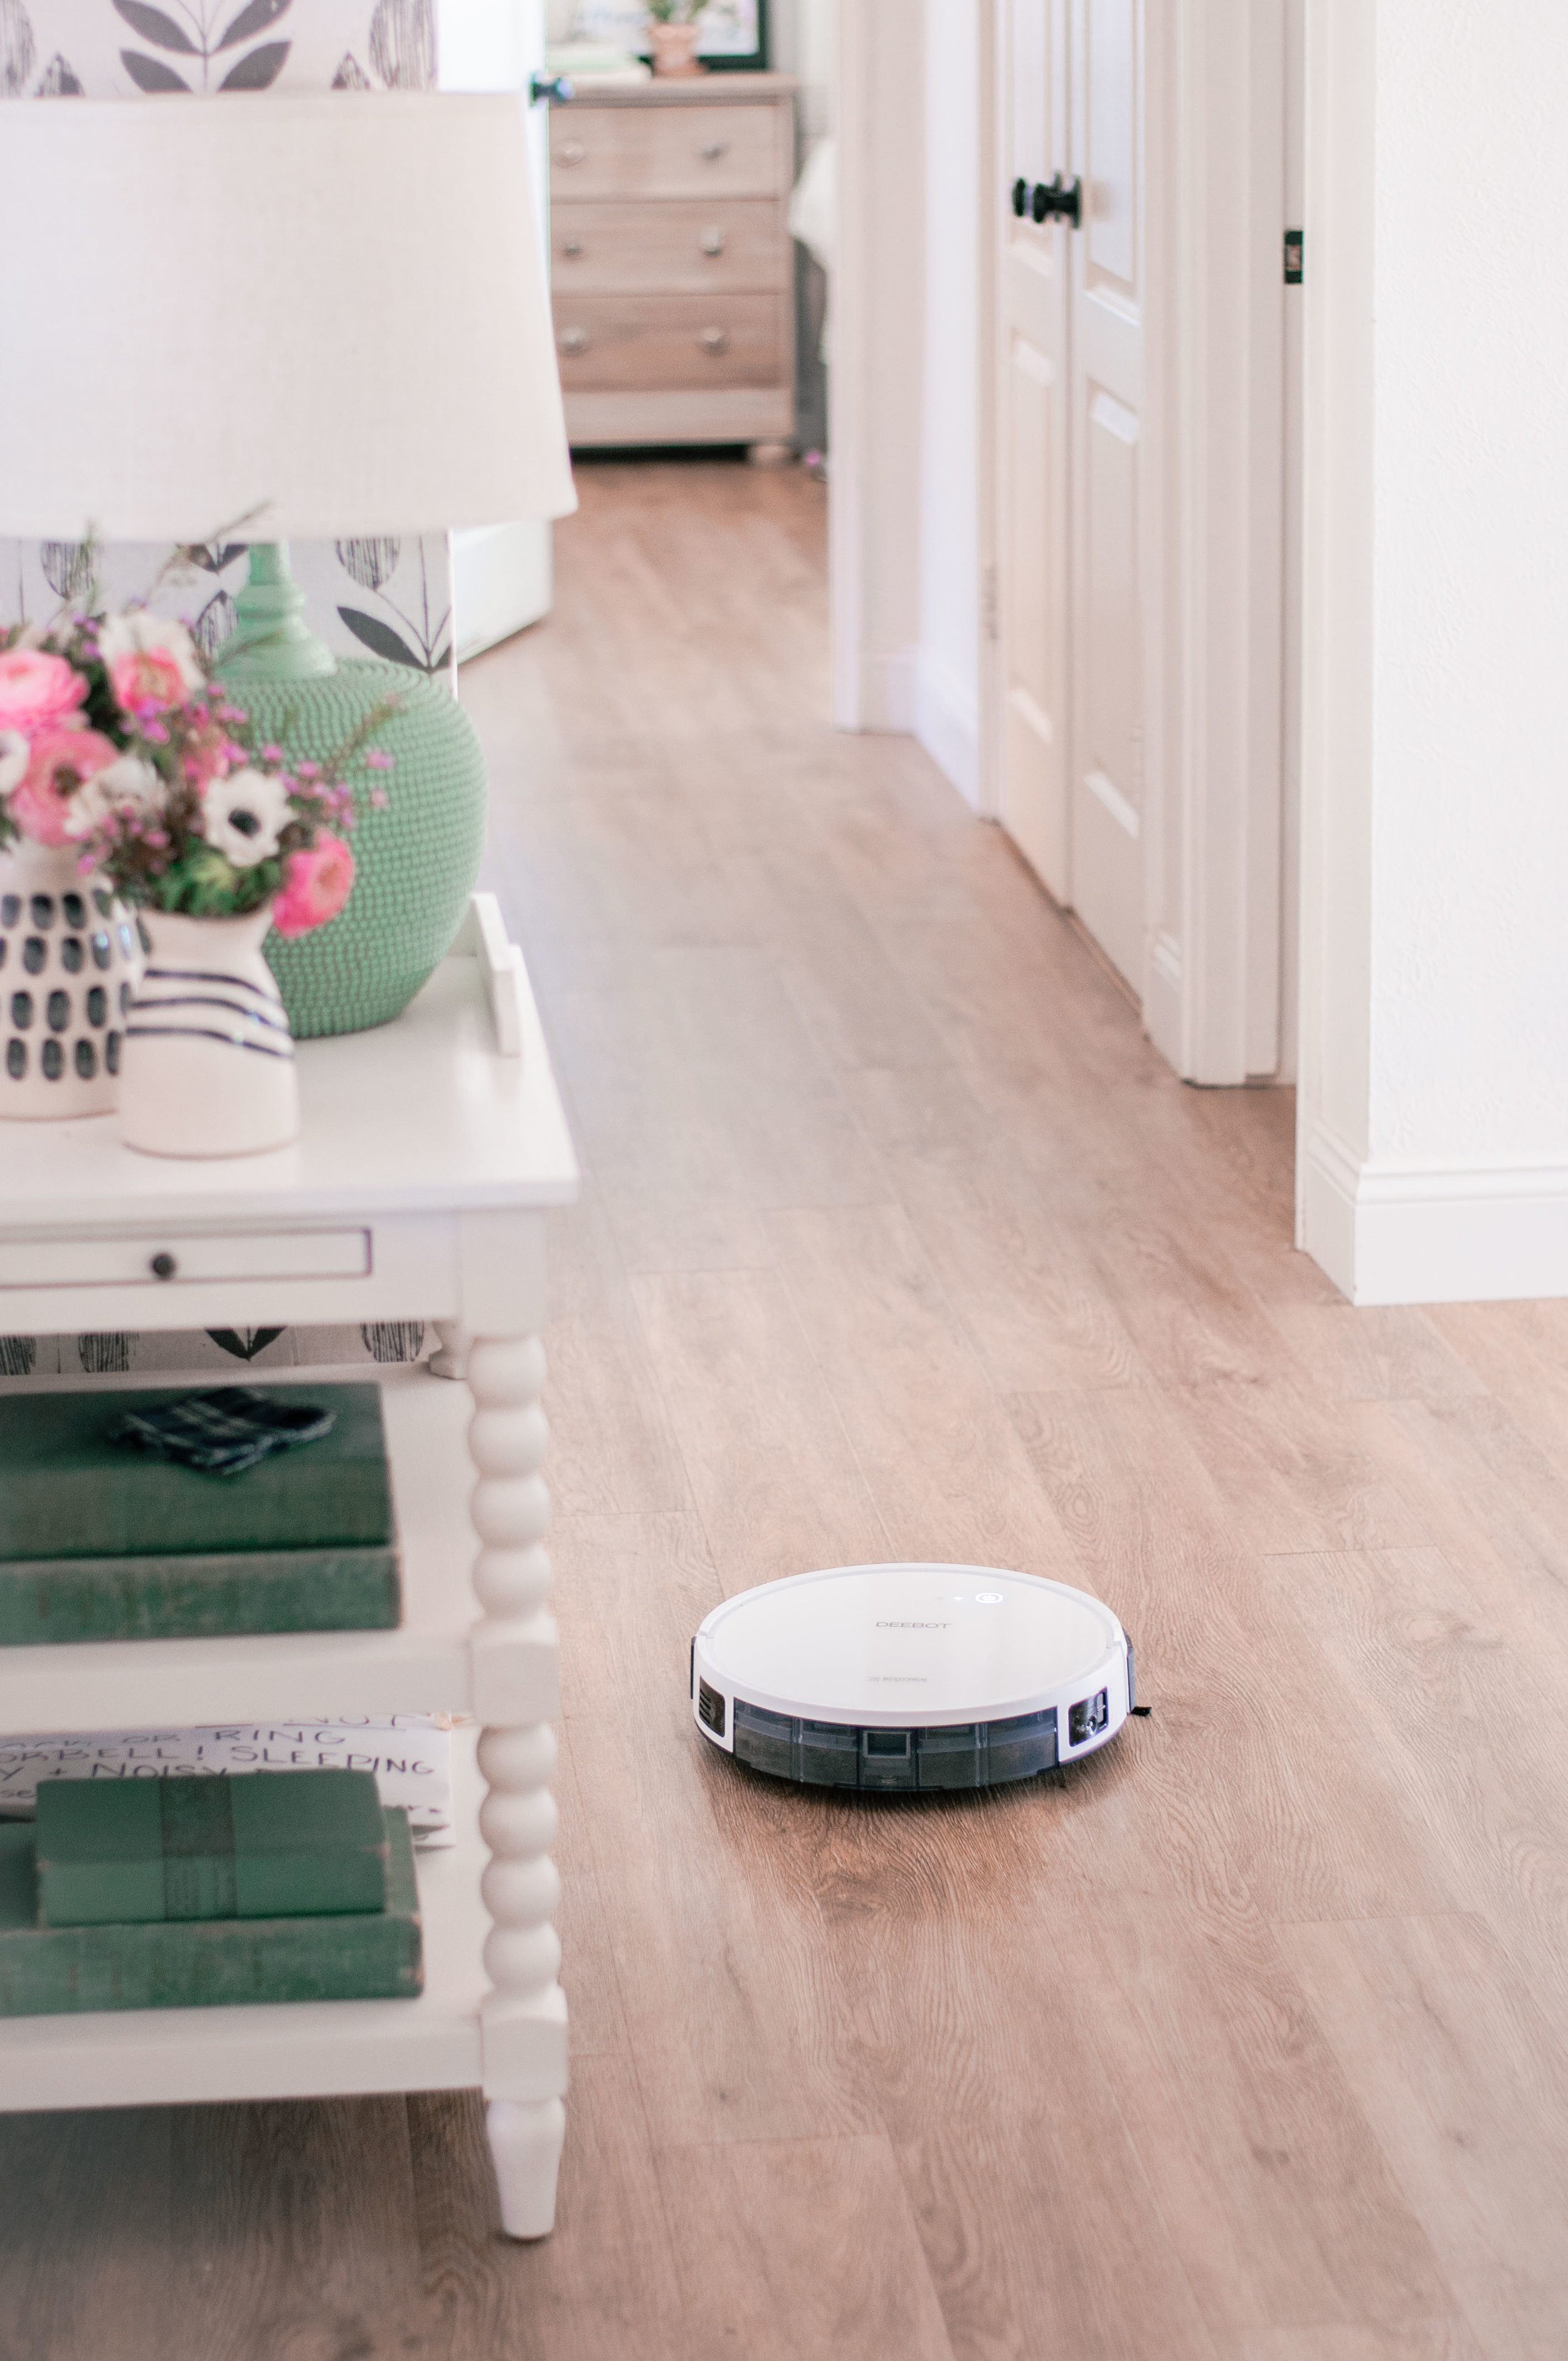 Affordable robot vacuums